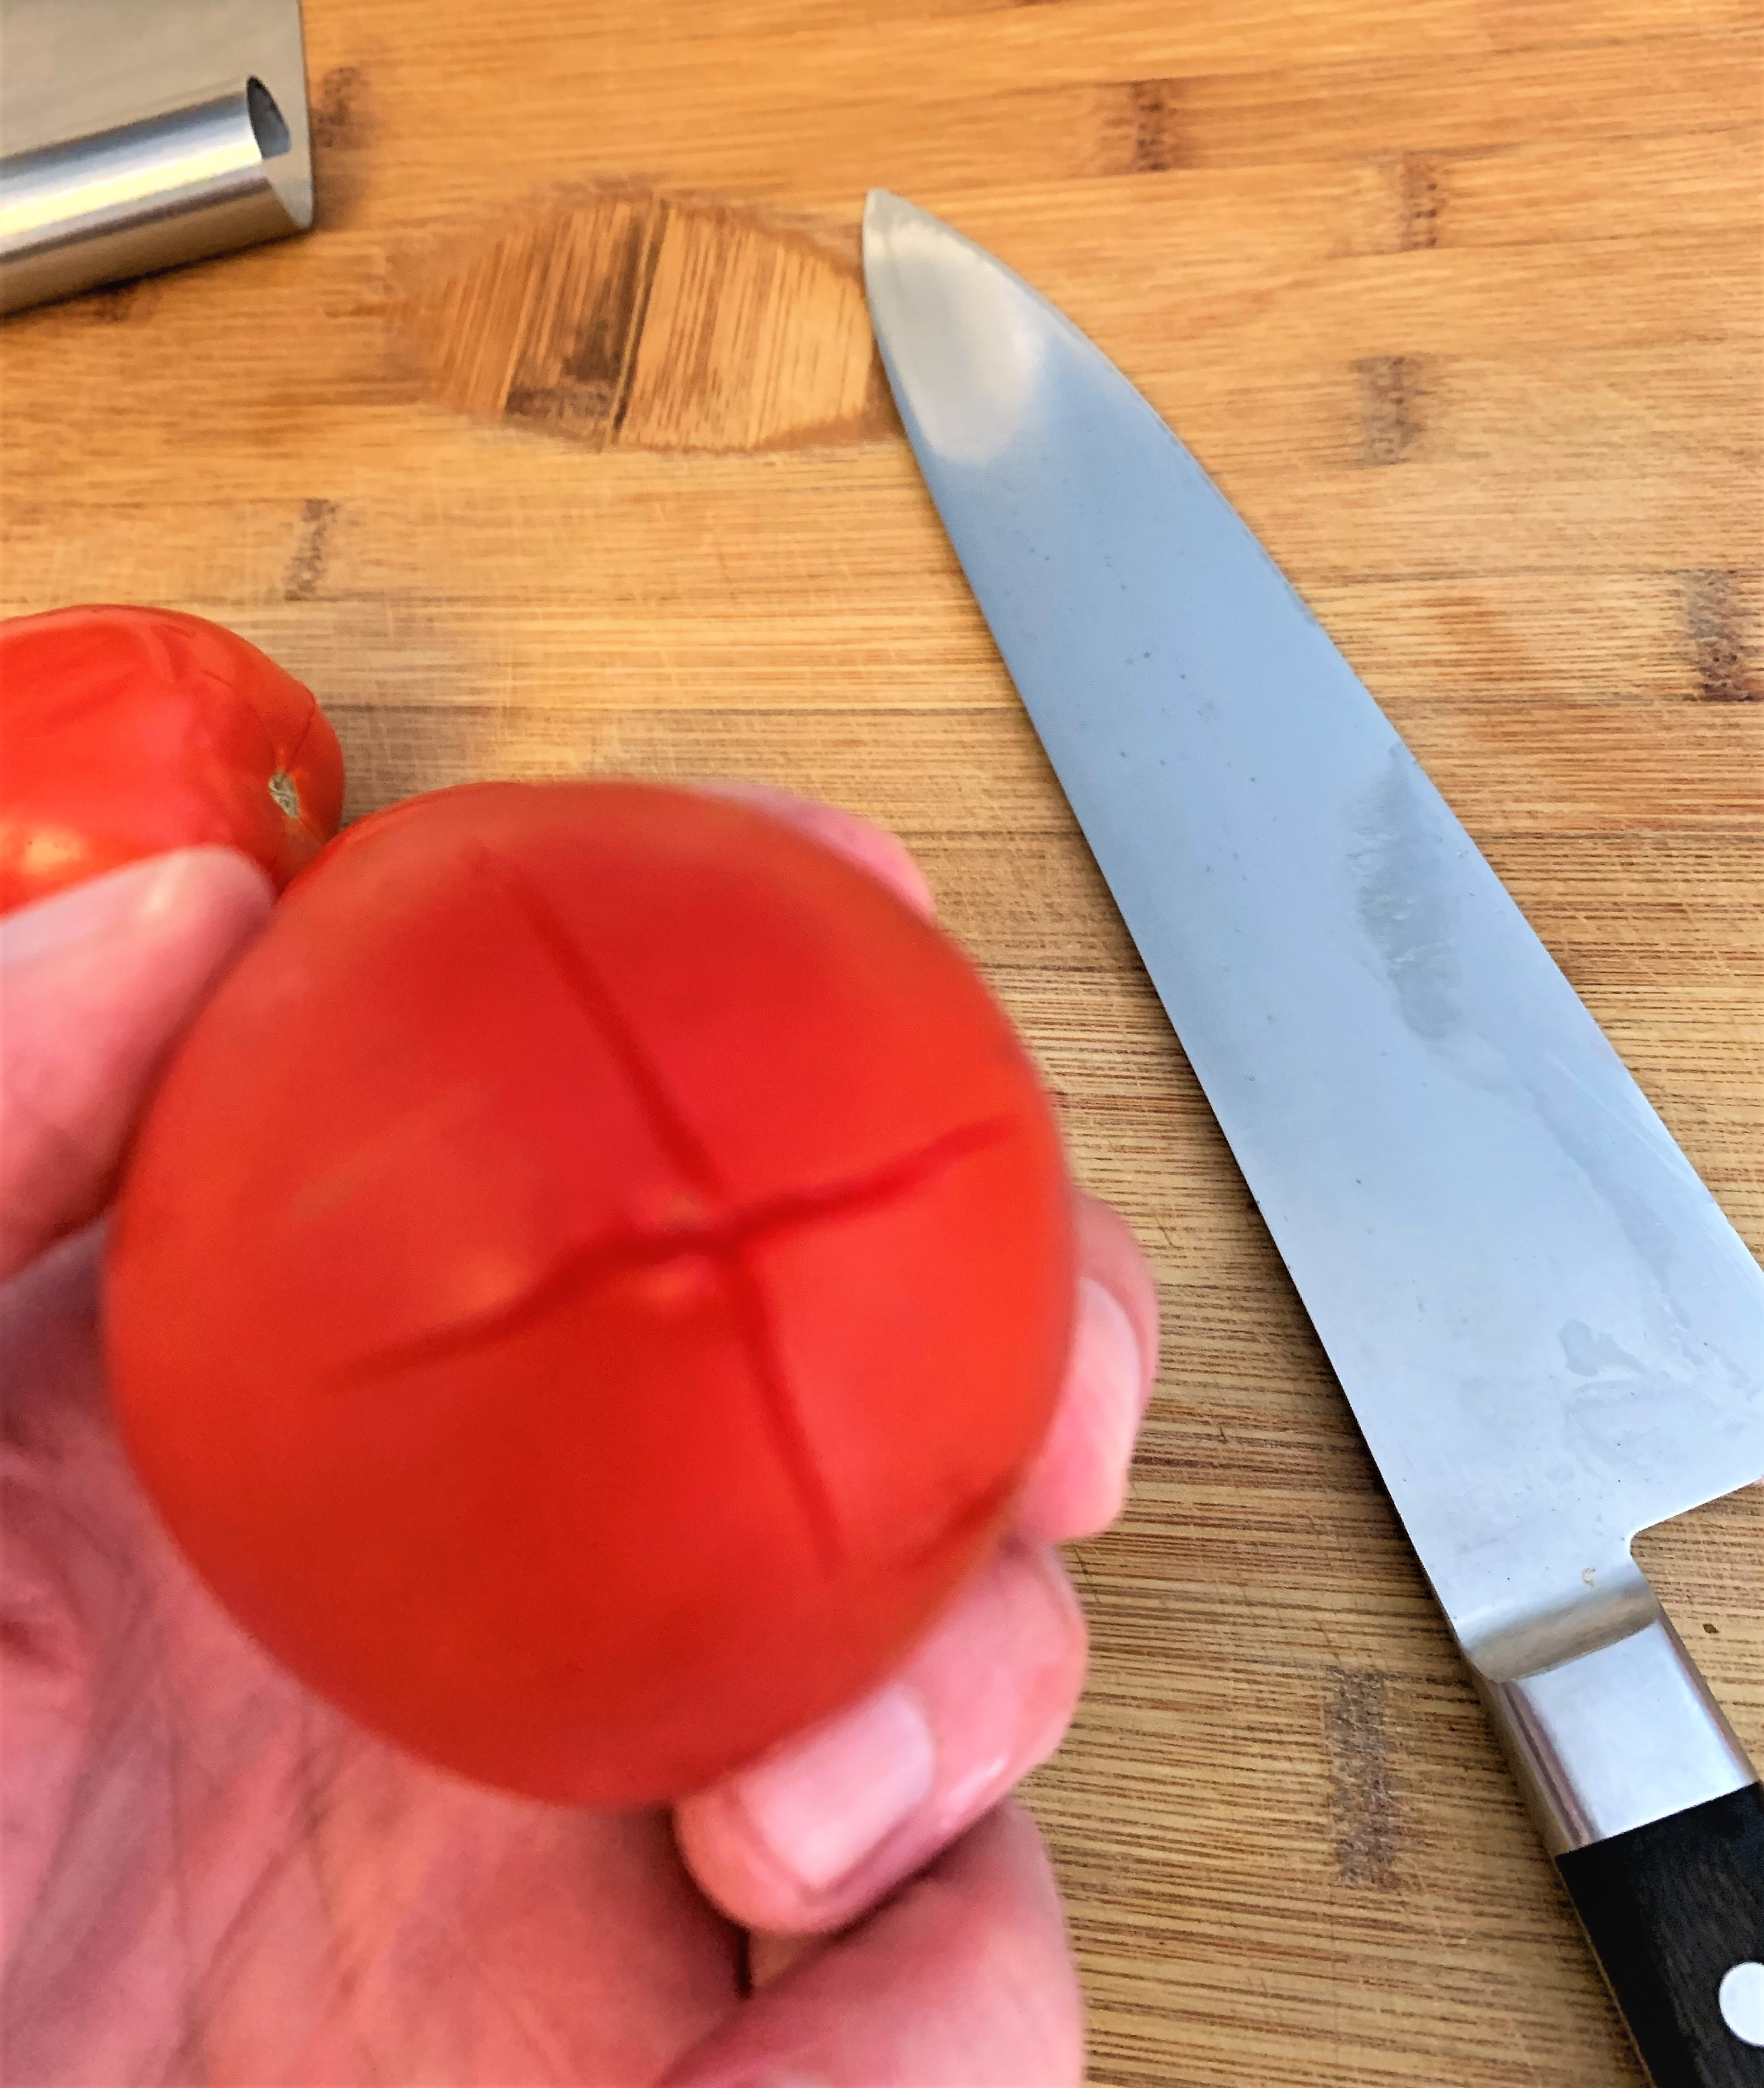 Prepping Tomatoes for Blanching